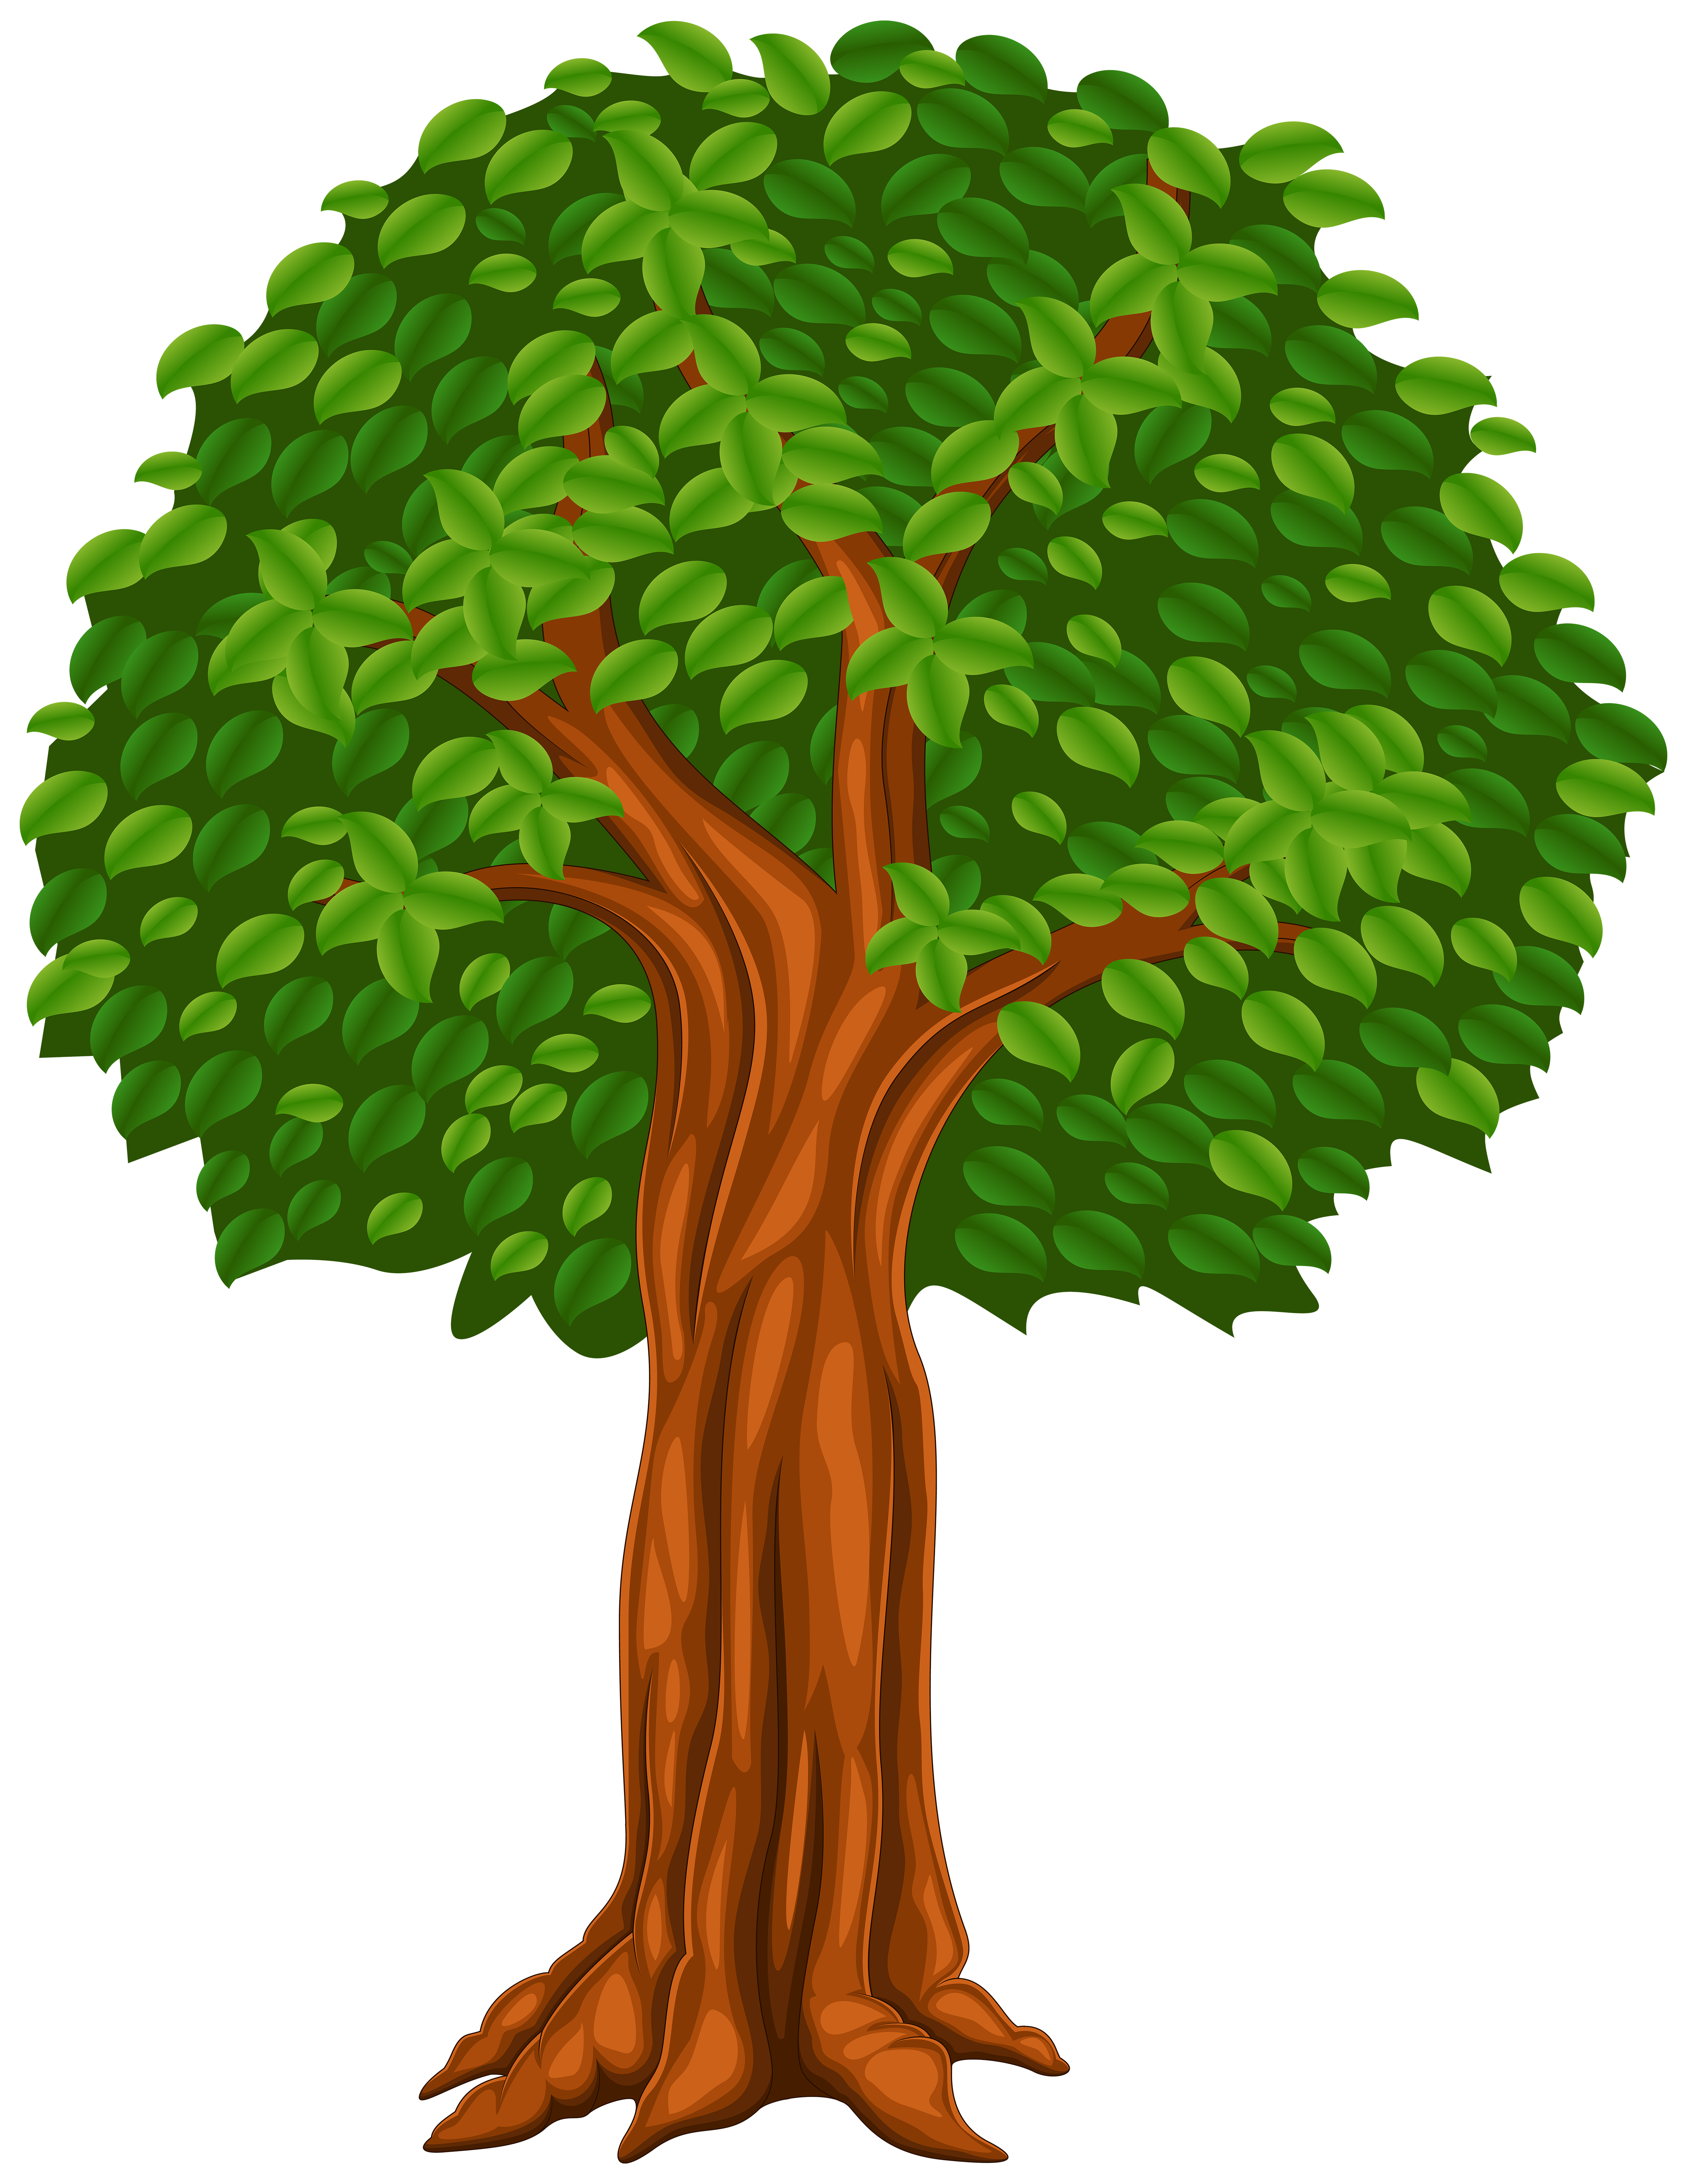 Cartoon Tree Png Free Cartoon Tree Png Transparent Images 28437 Pngio All images and logos are crafted with great workmanship. pngio com